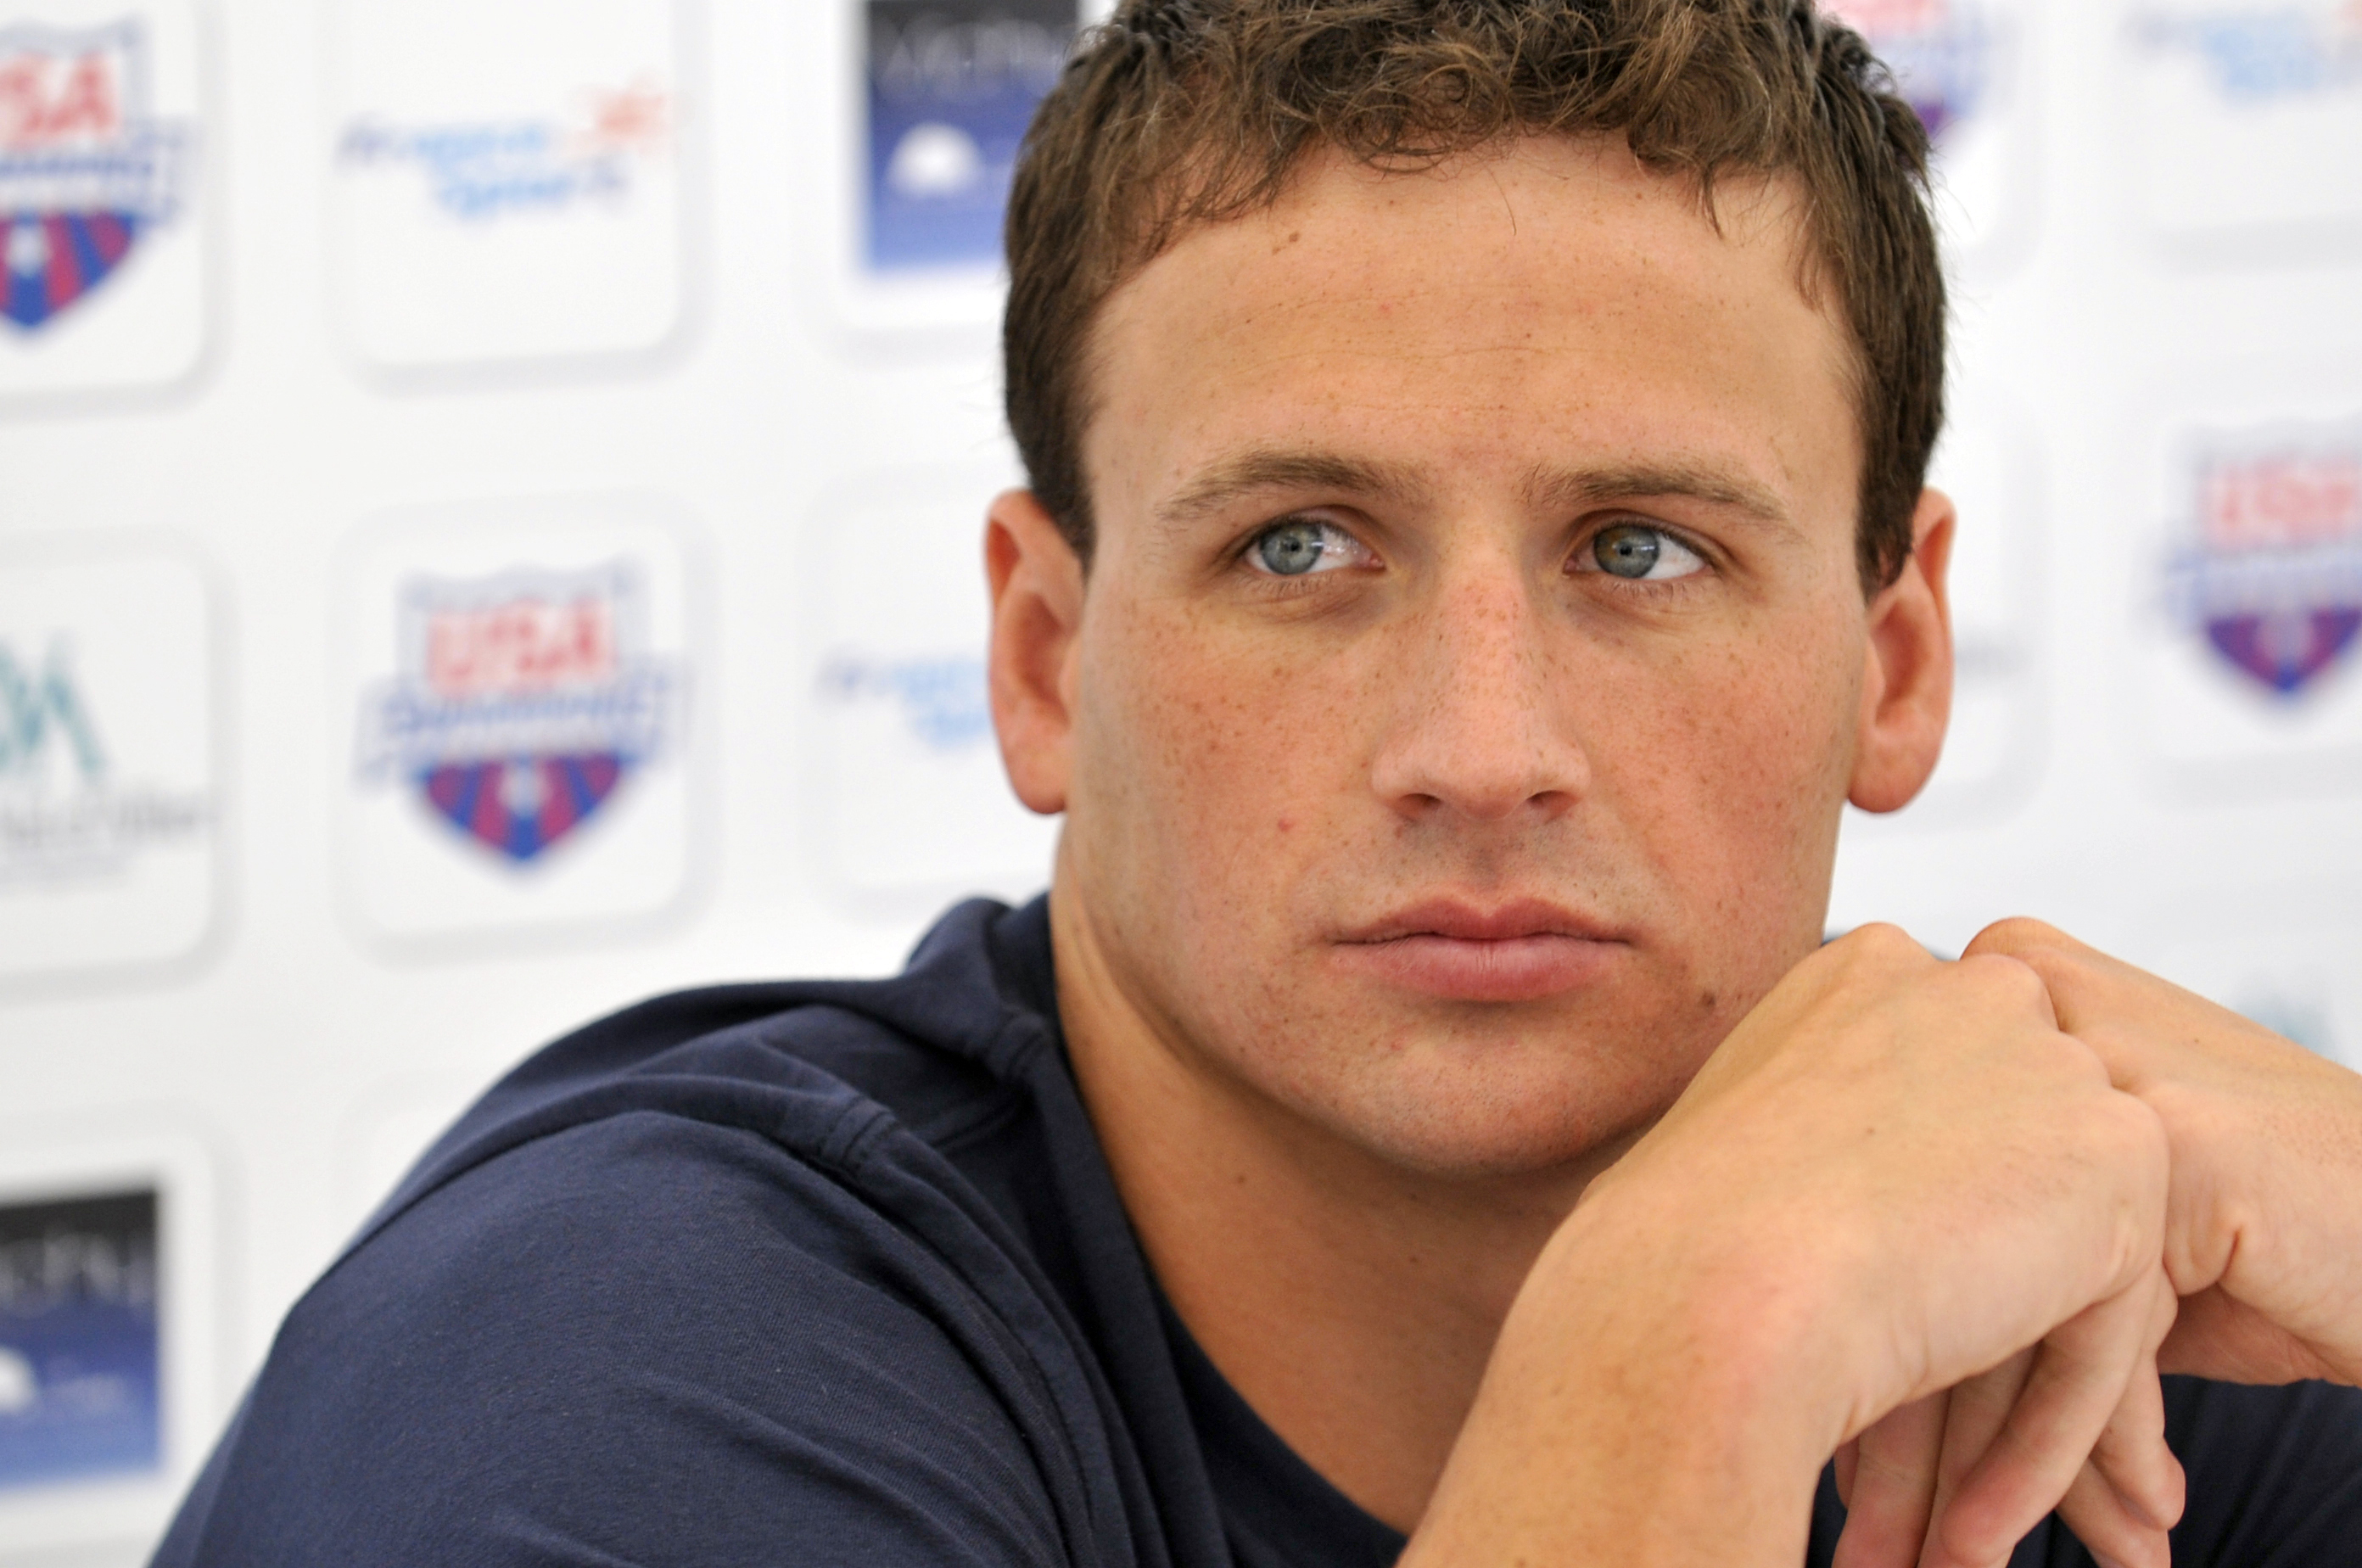 High Res Ryan Lochte Wallpapers #951010 Wallpaper